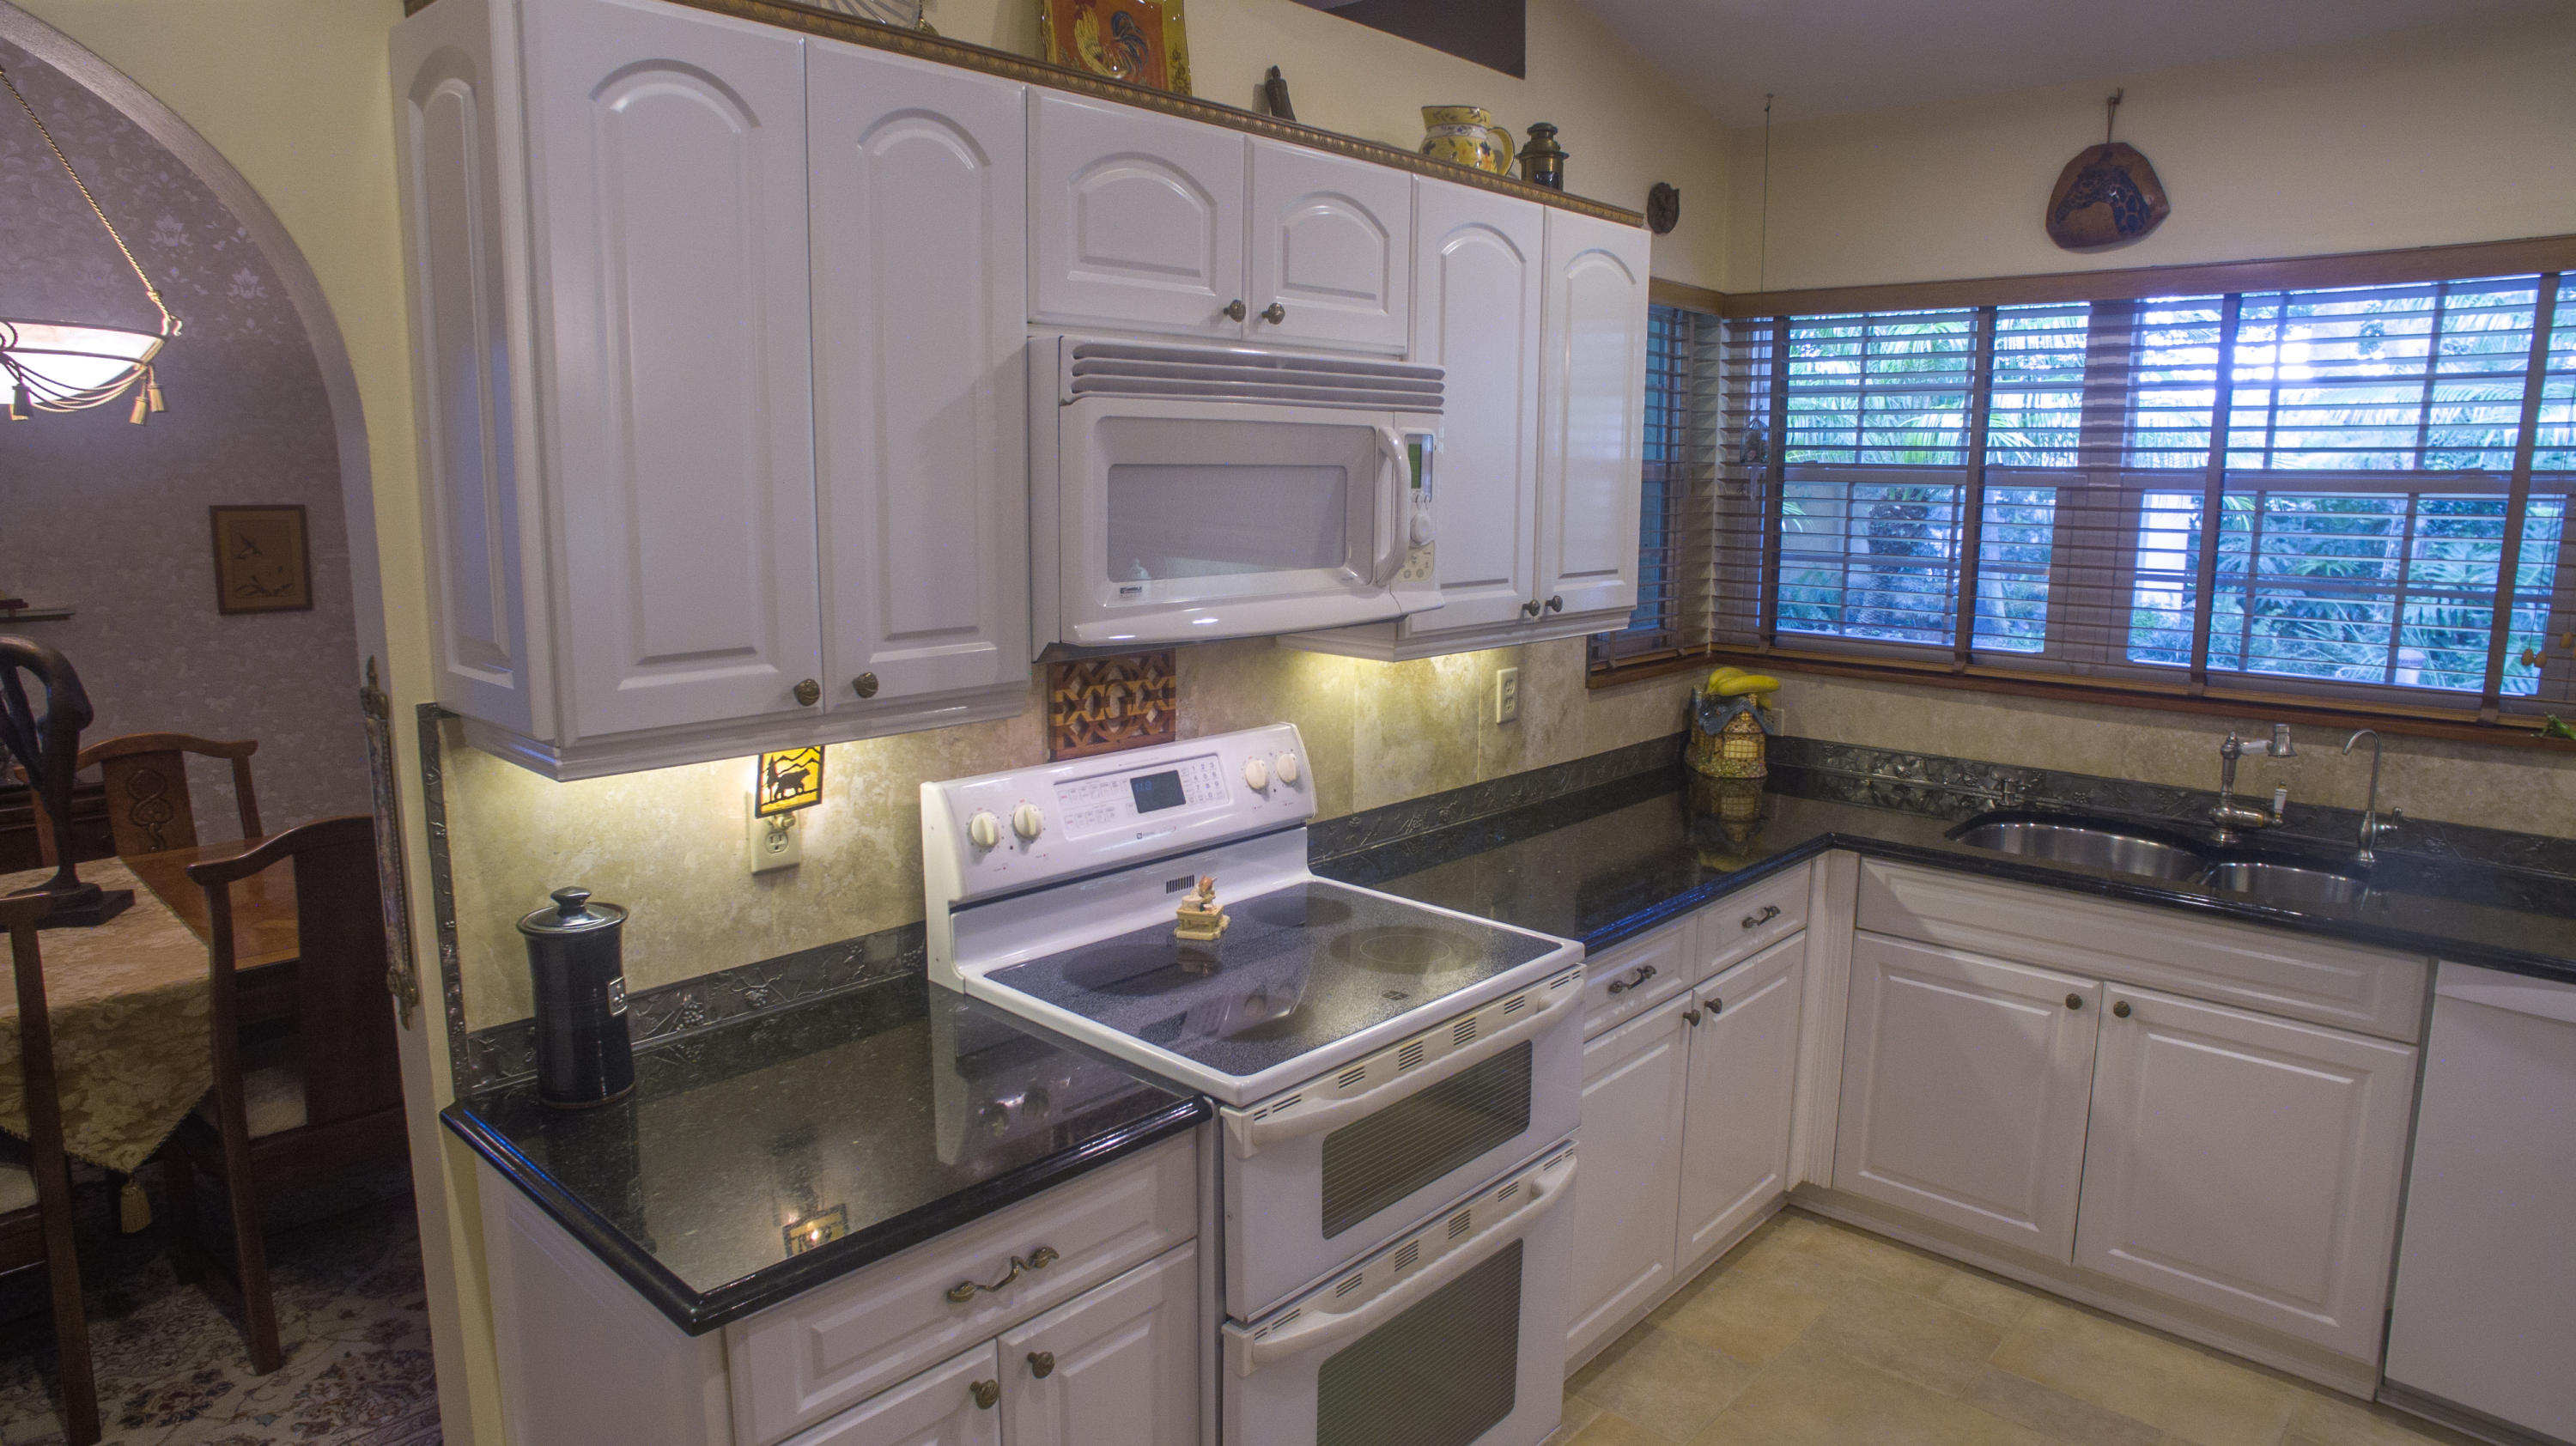 Kitchen Cabinets with pull outs